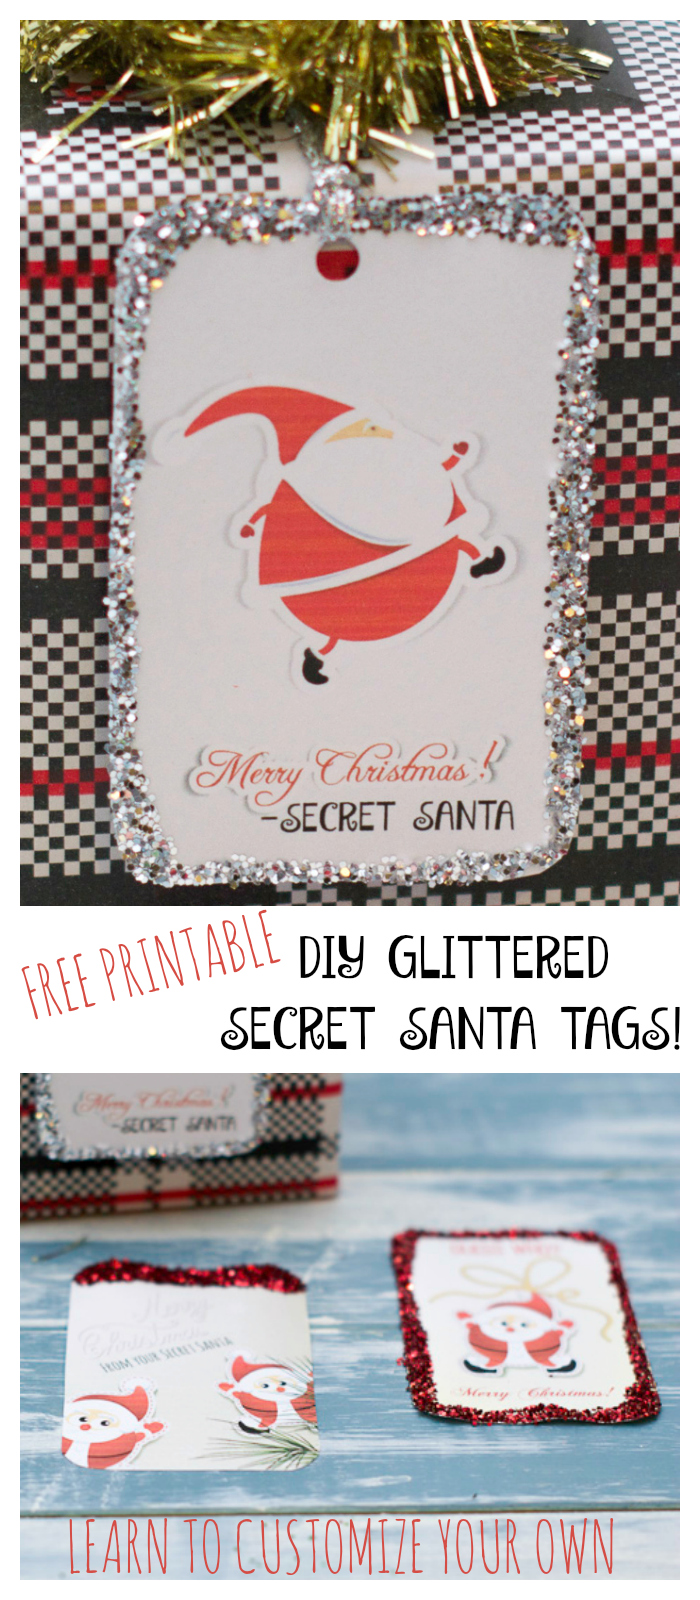 image about Secret Santa Gift Tags Printable identify Printable Glittered Top secret Santa Reward Tags - Heavy Hoff